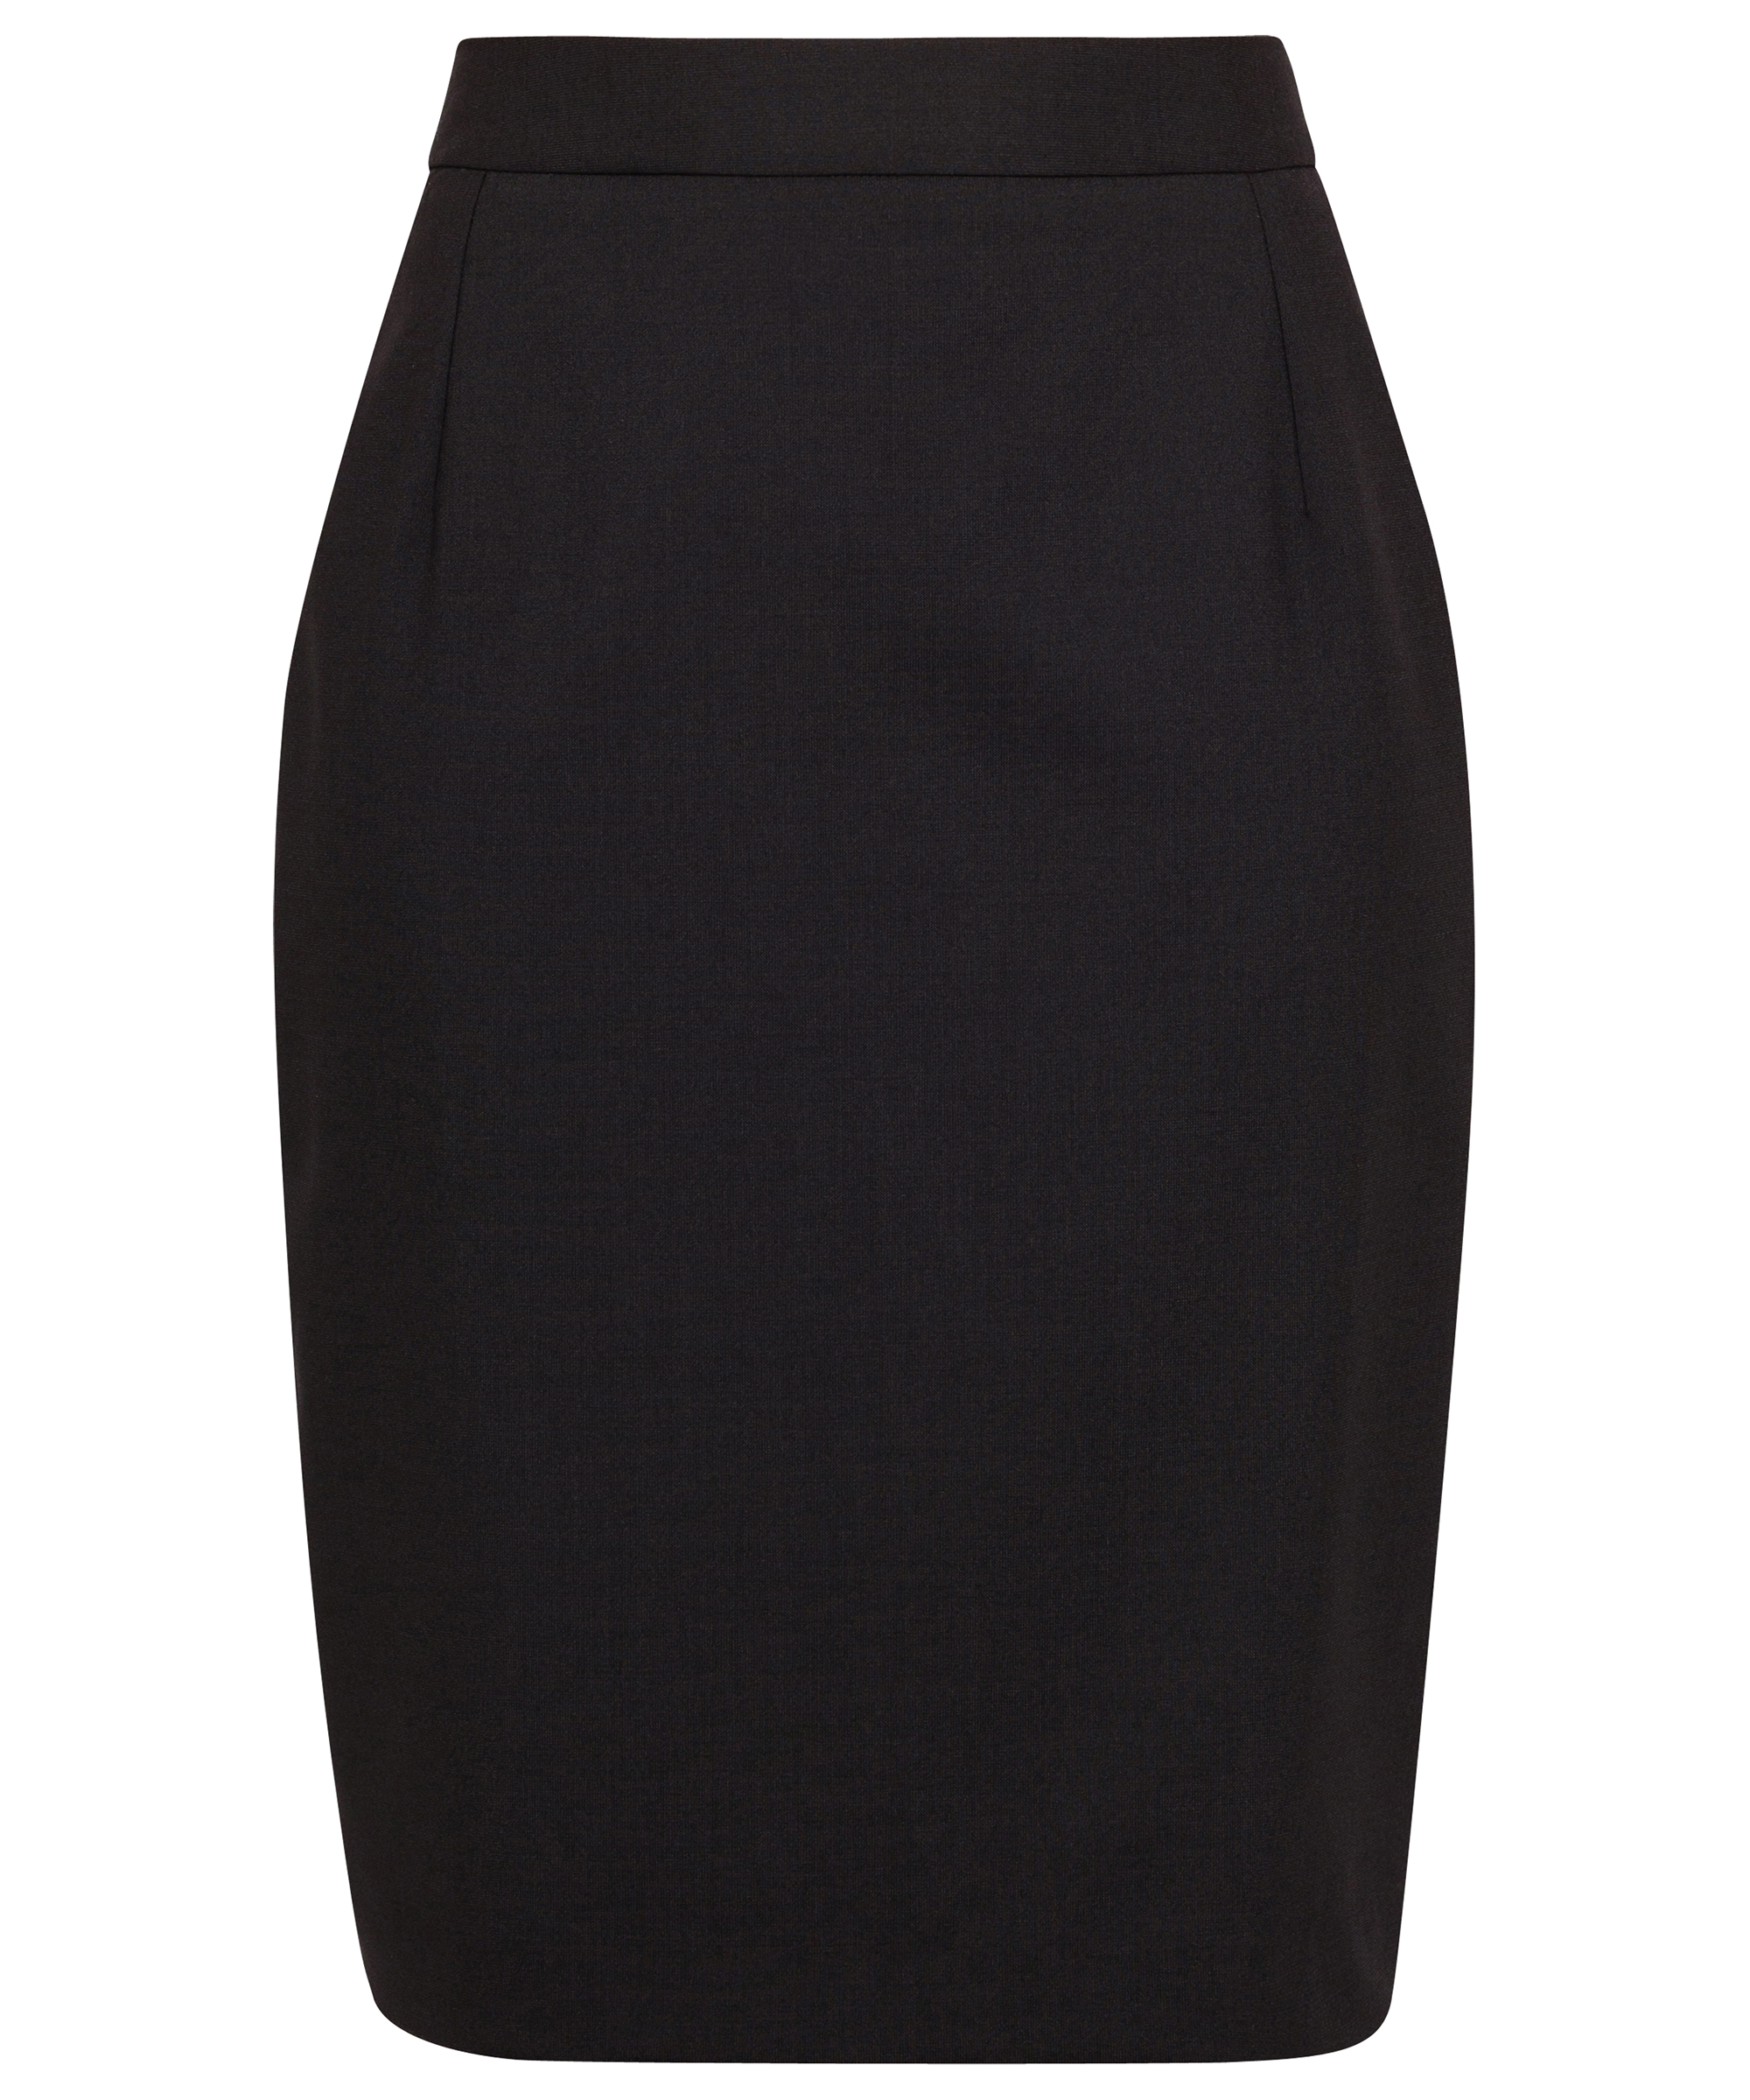 801027bc182 Stretch Wool Blend Plain Weave Suit Separate Skirt - Size 20-24 ...